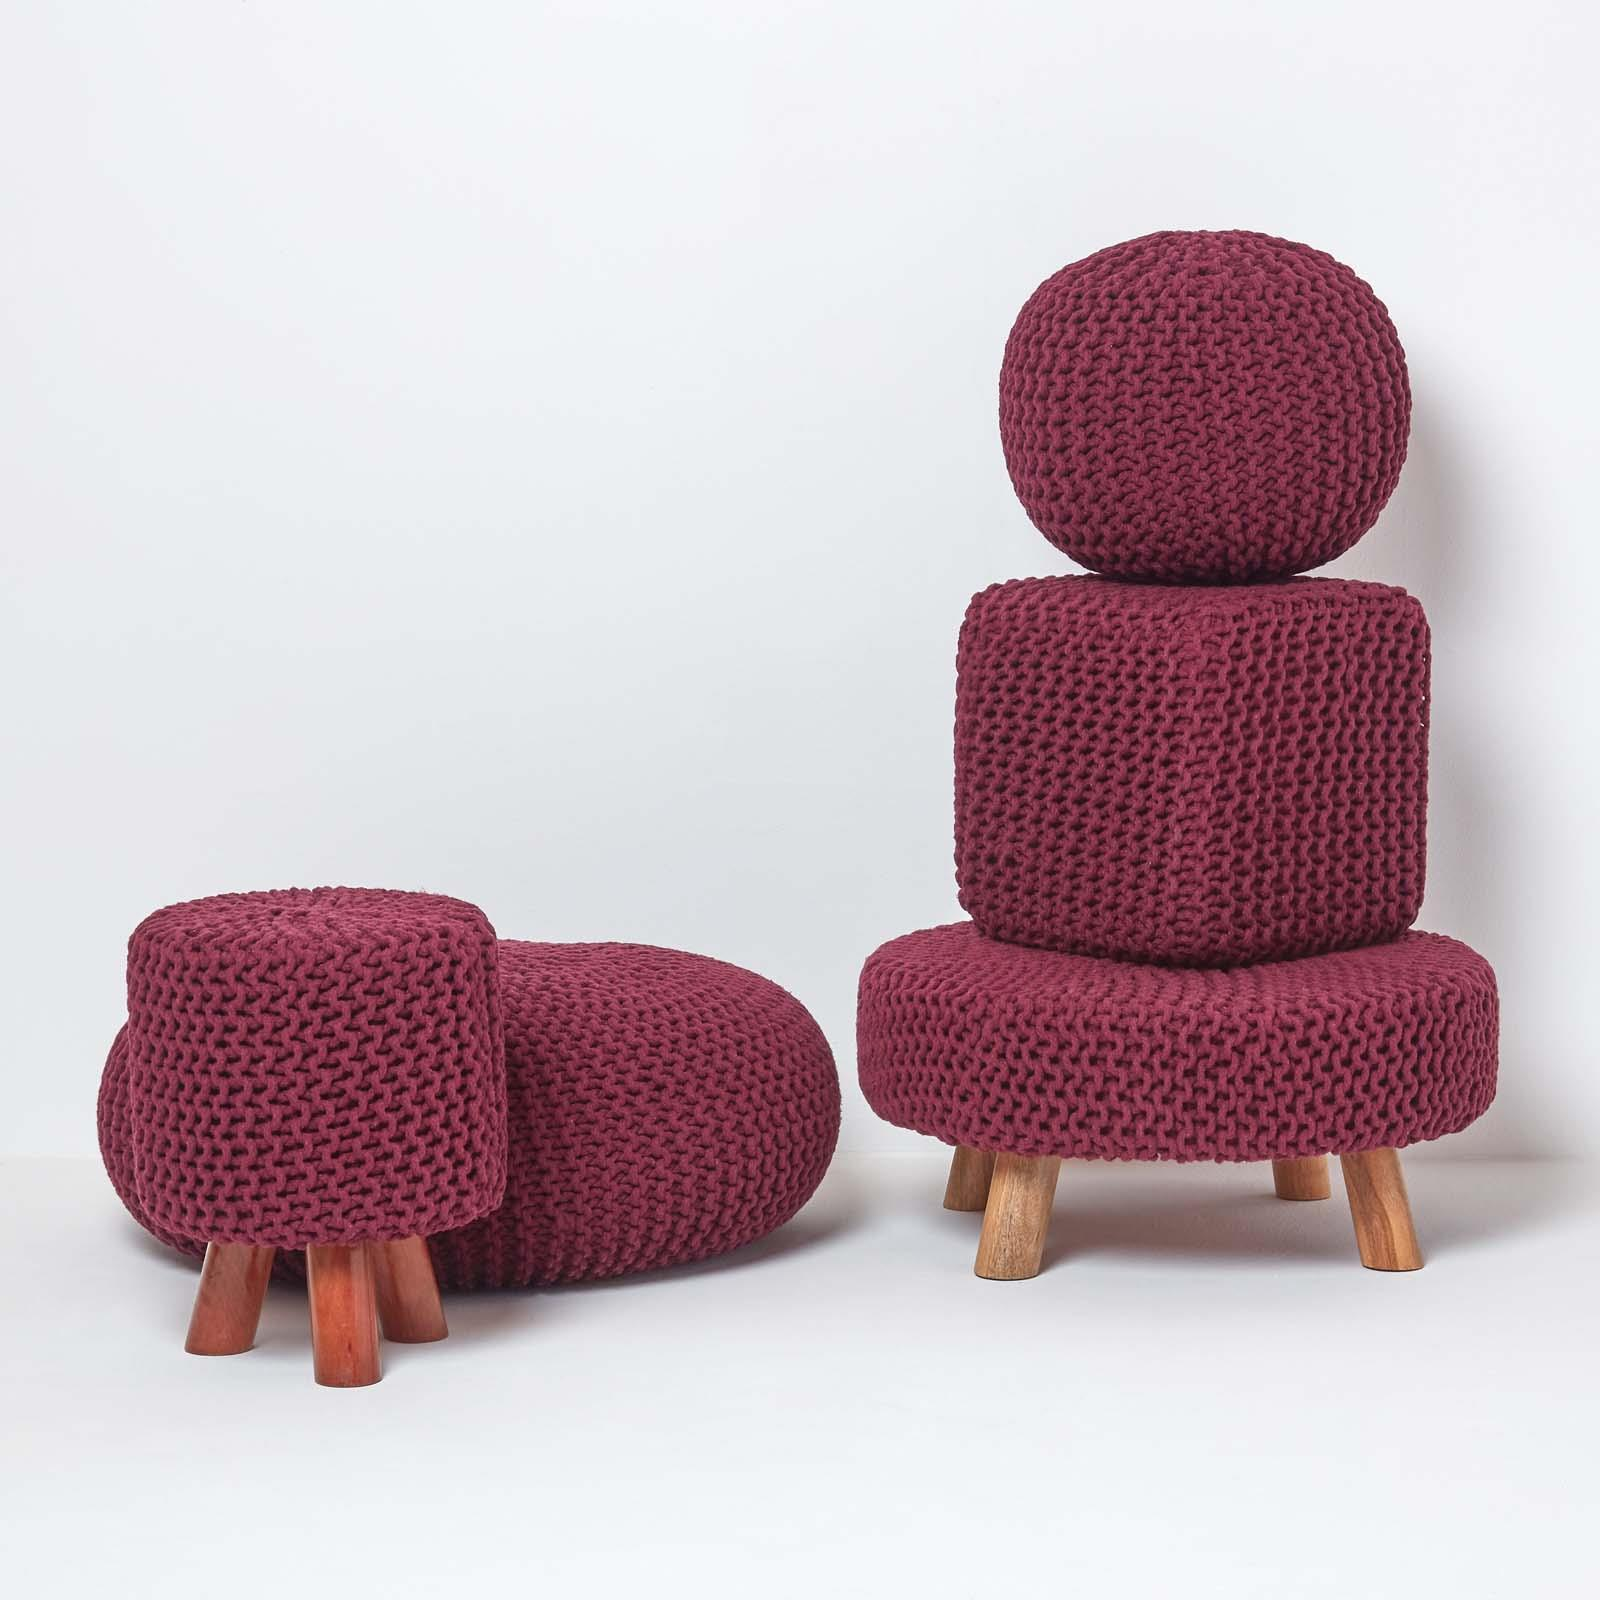 Hand-Knitted-100-Cotton-Pouffes-Round-Sphere-Or-Cube-Square-Chunky-Footstools thumbnail 156